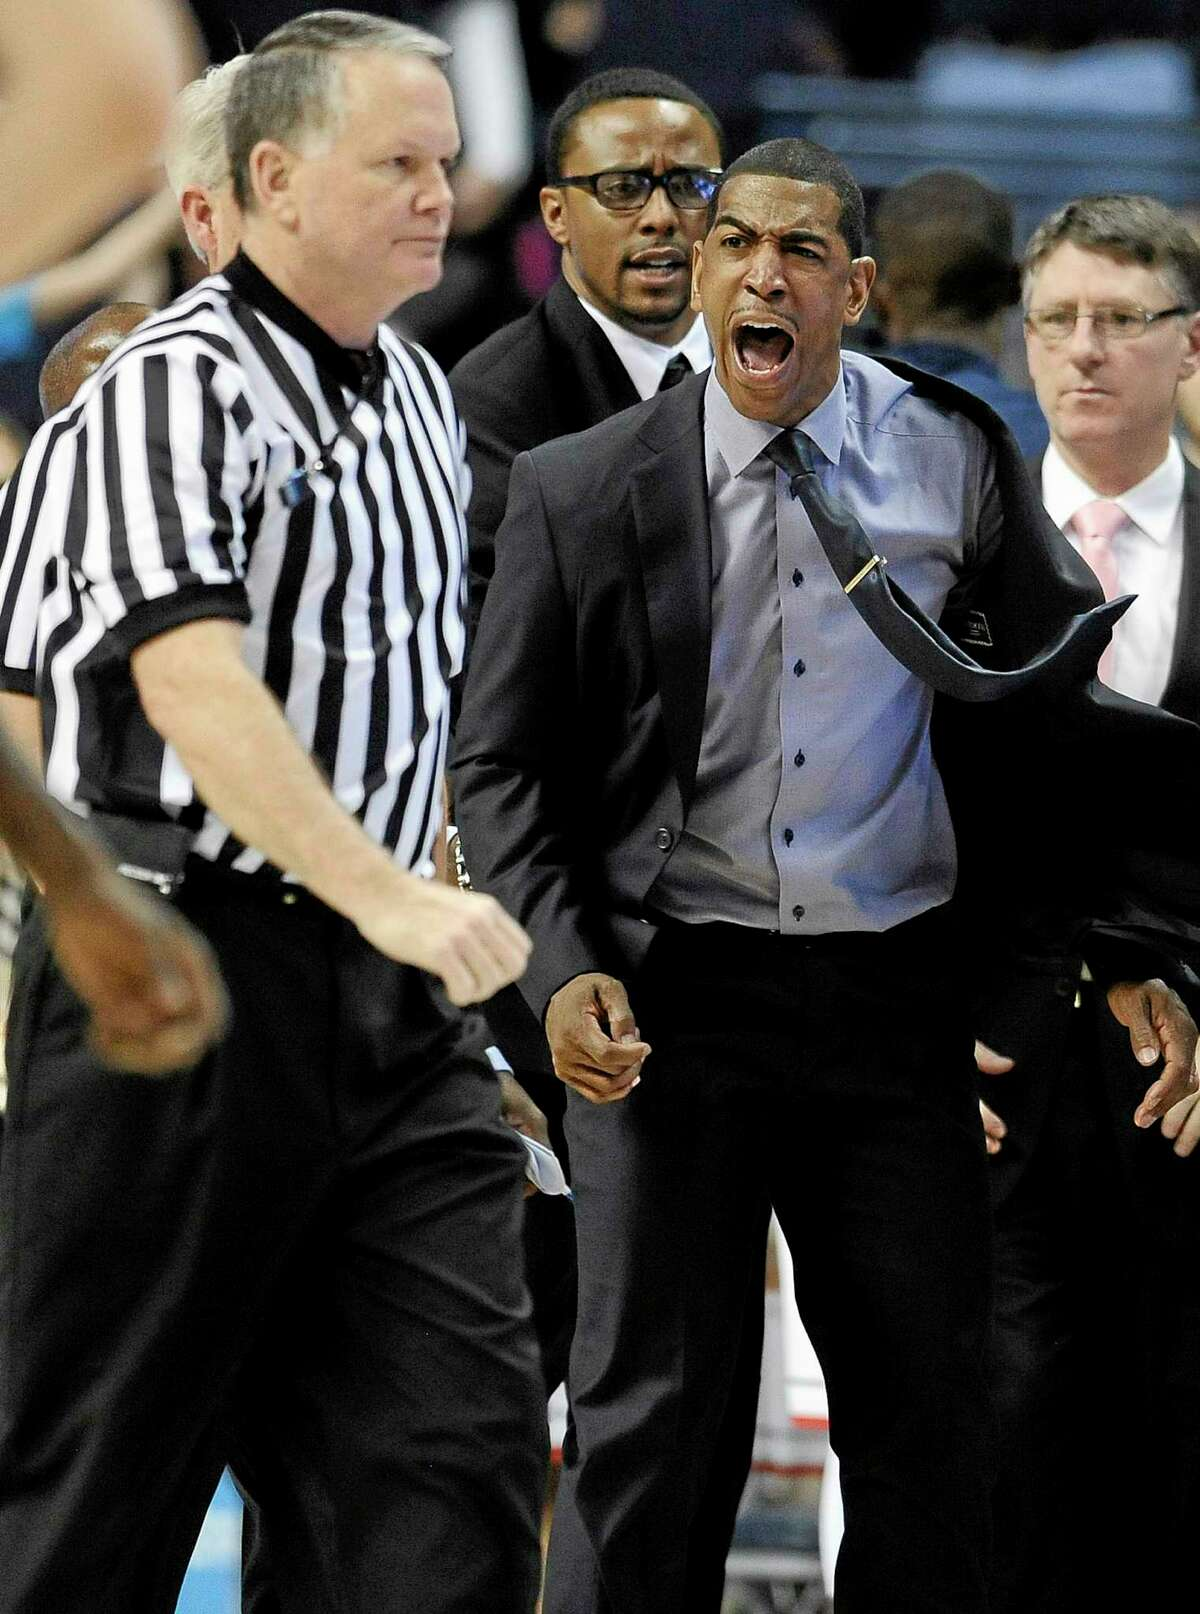 UConn coach Kevin Ollie, right, yells toward an official during the second half of Saturday's game against Louisville in Storrs. Ollie received two technicals on the play and was ejected from the game.